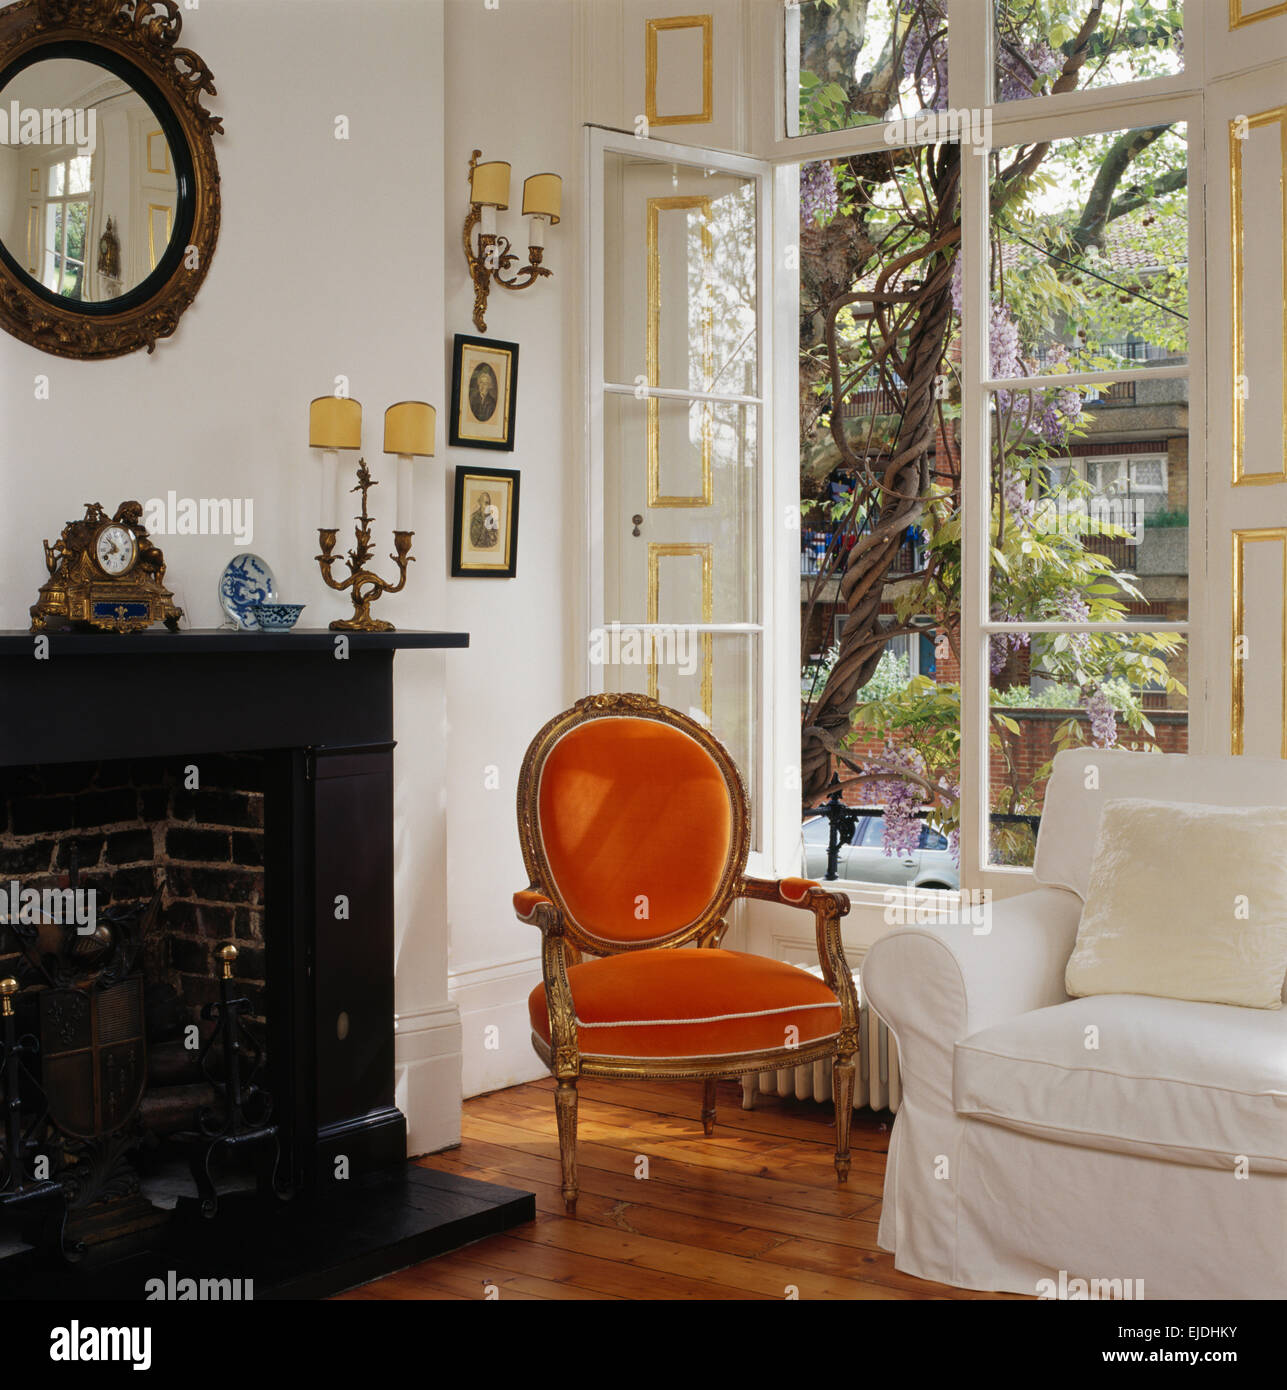 Orange velvet French style chair in front of open window in ...